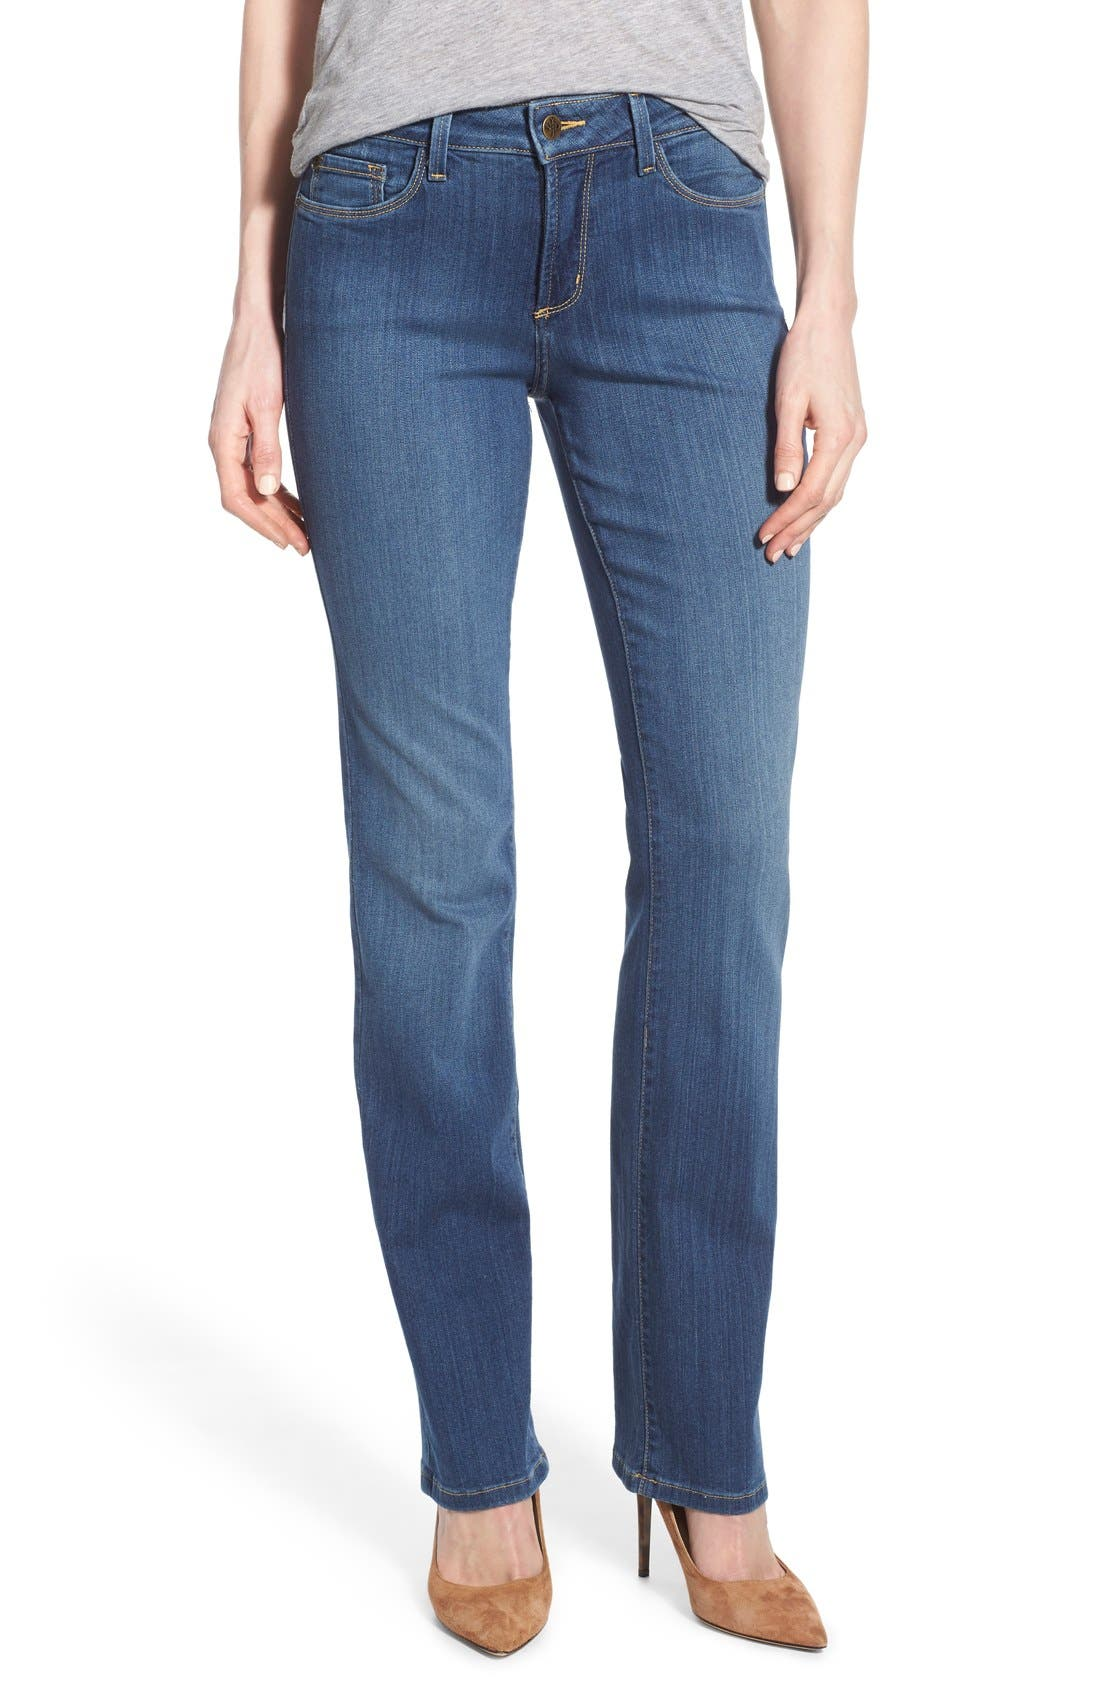 'Marilyn' Stretch Straight Leg Jeans,                             Main thumbnail 1, color,                             Anderson